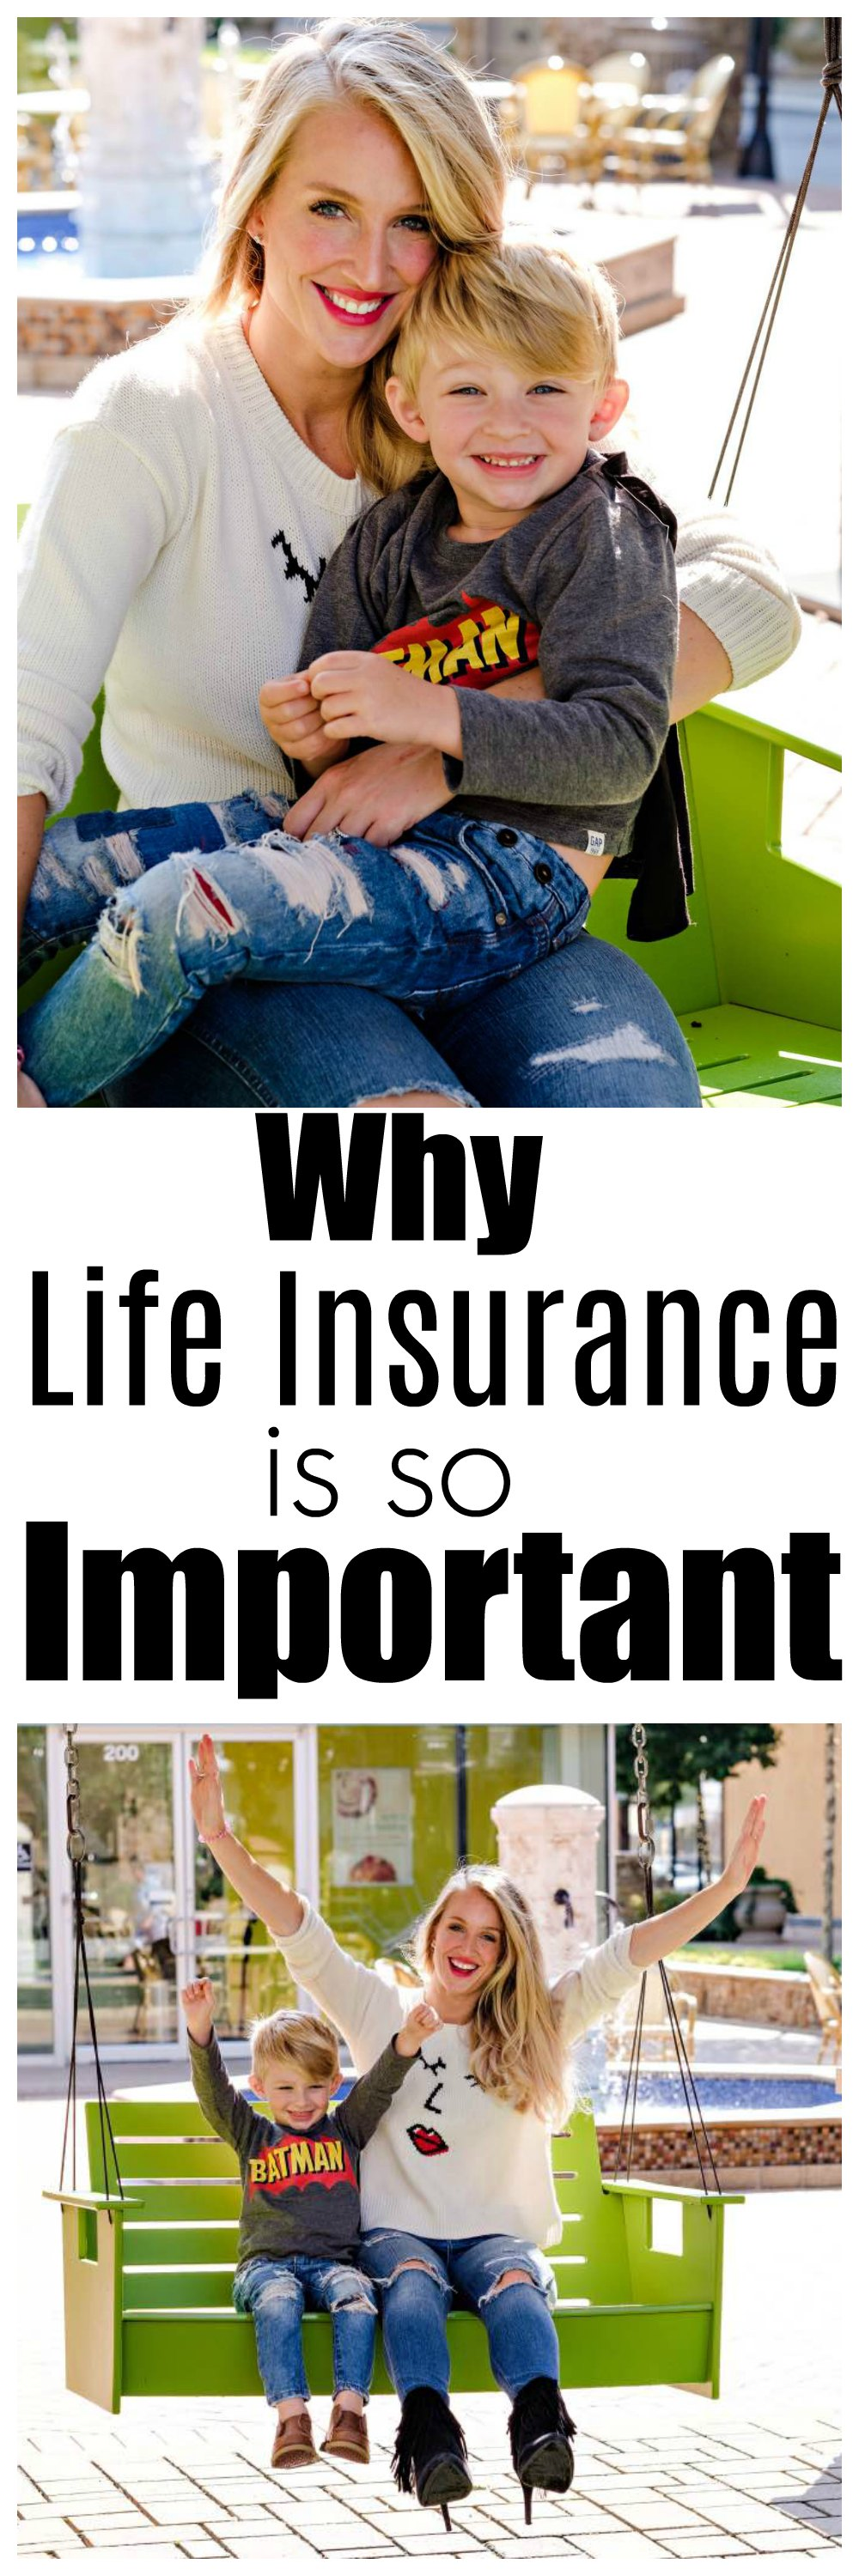 Why Life Insurance is SO Important by Atlanta mom blogger Happily Hughes